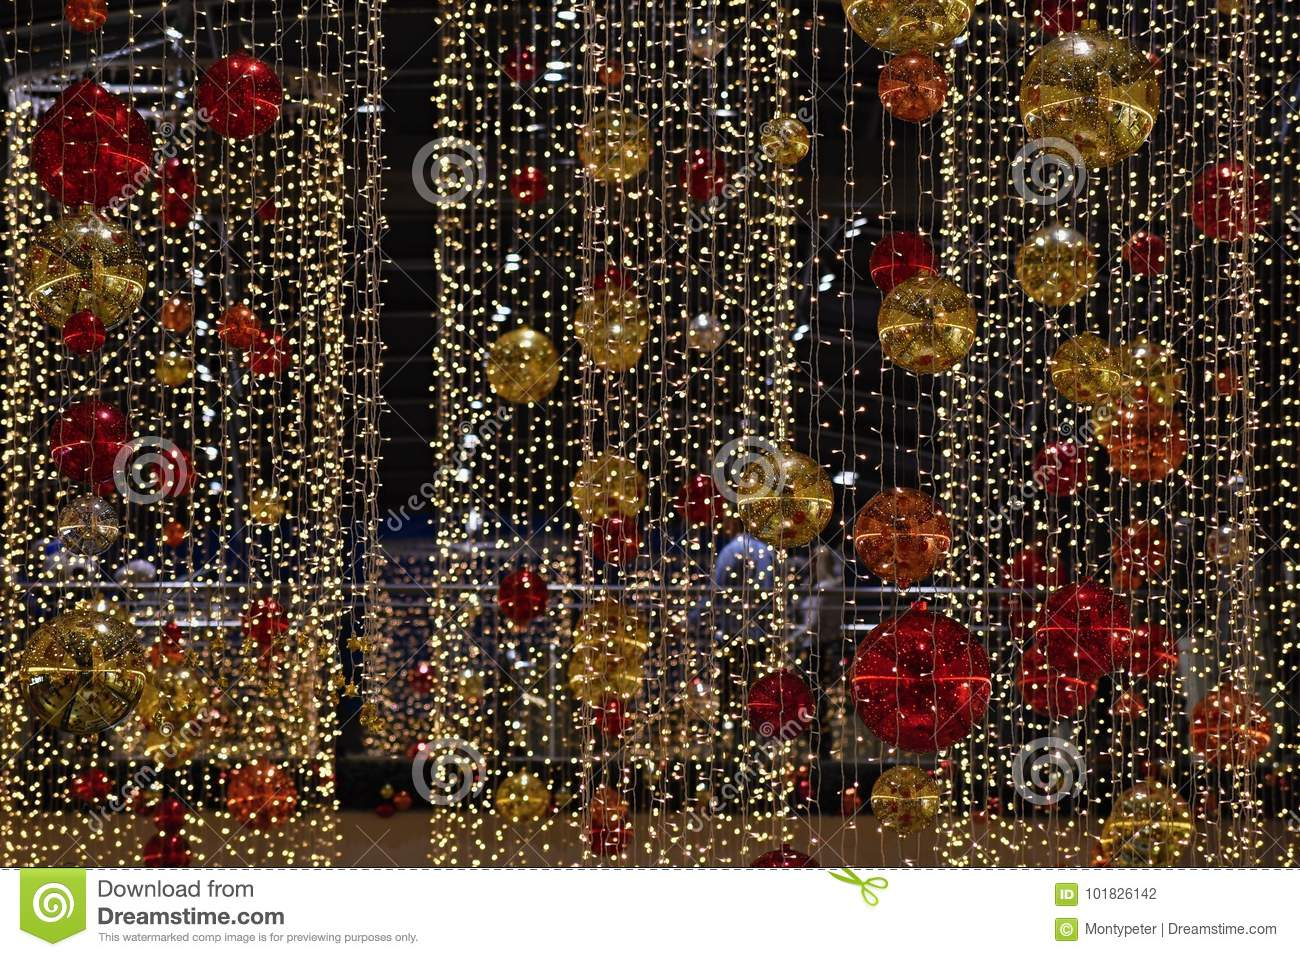 Colorful christmas Decoration. Winter holidays and traditional ornaments on a Christmas tree. Lighting chains - candles for season